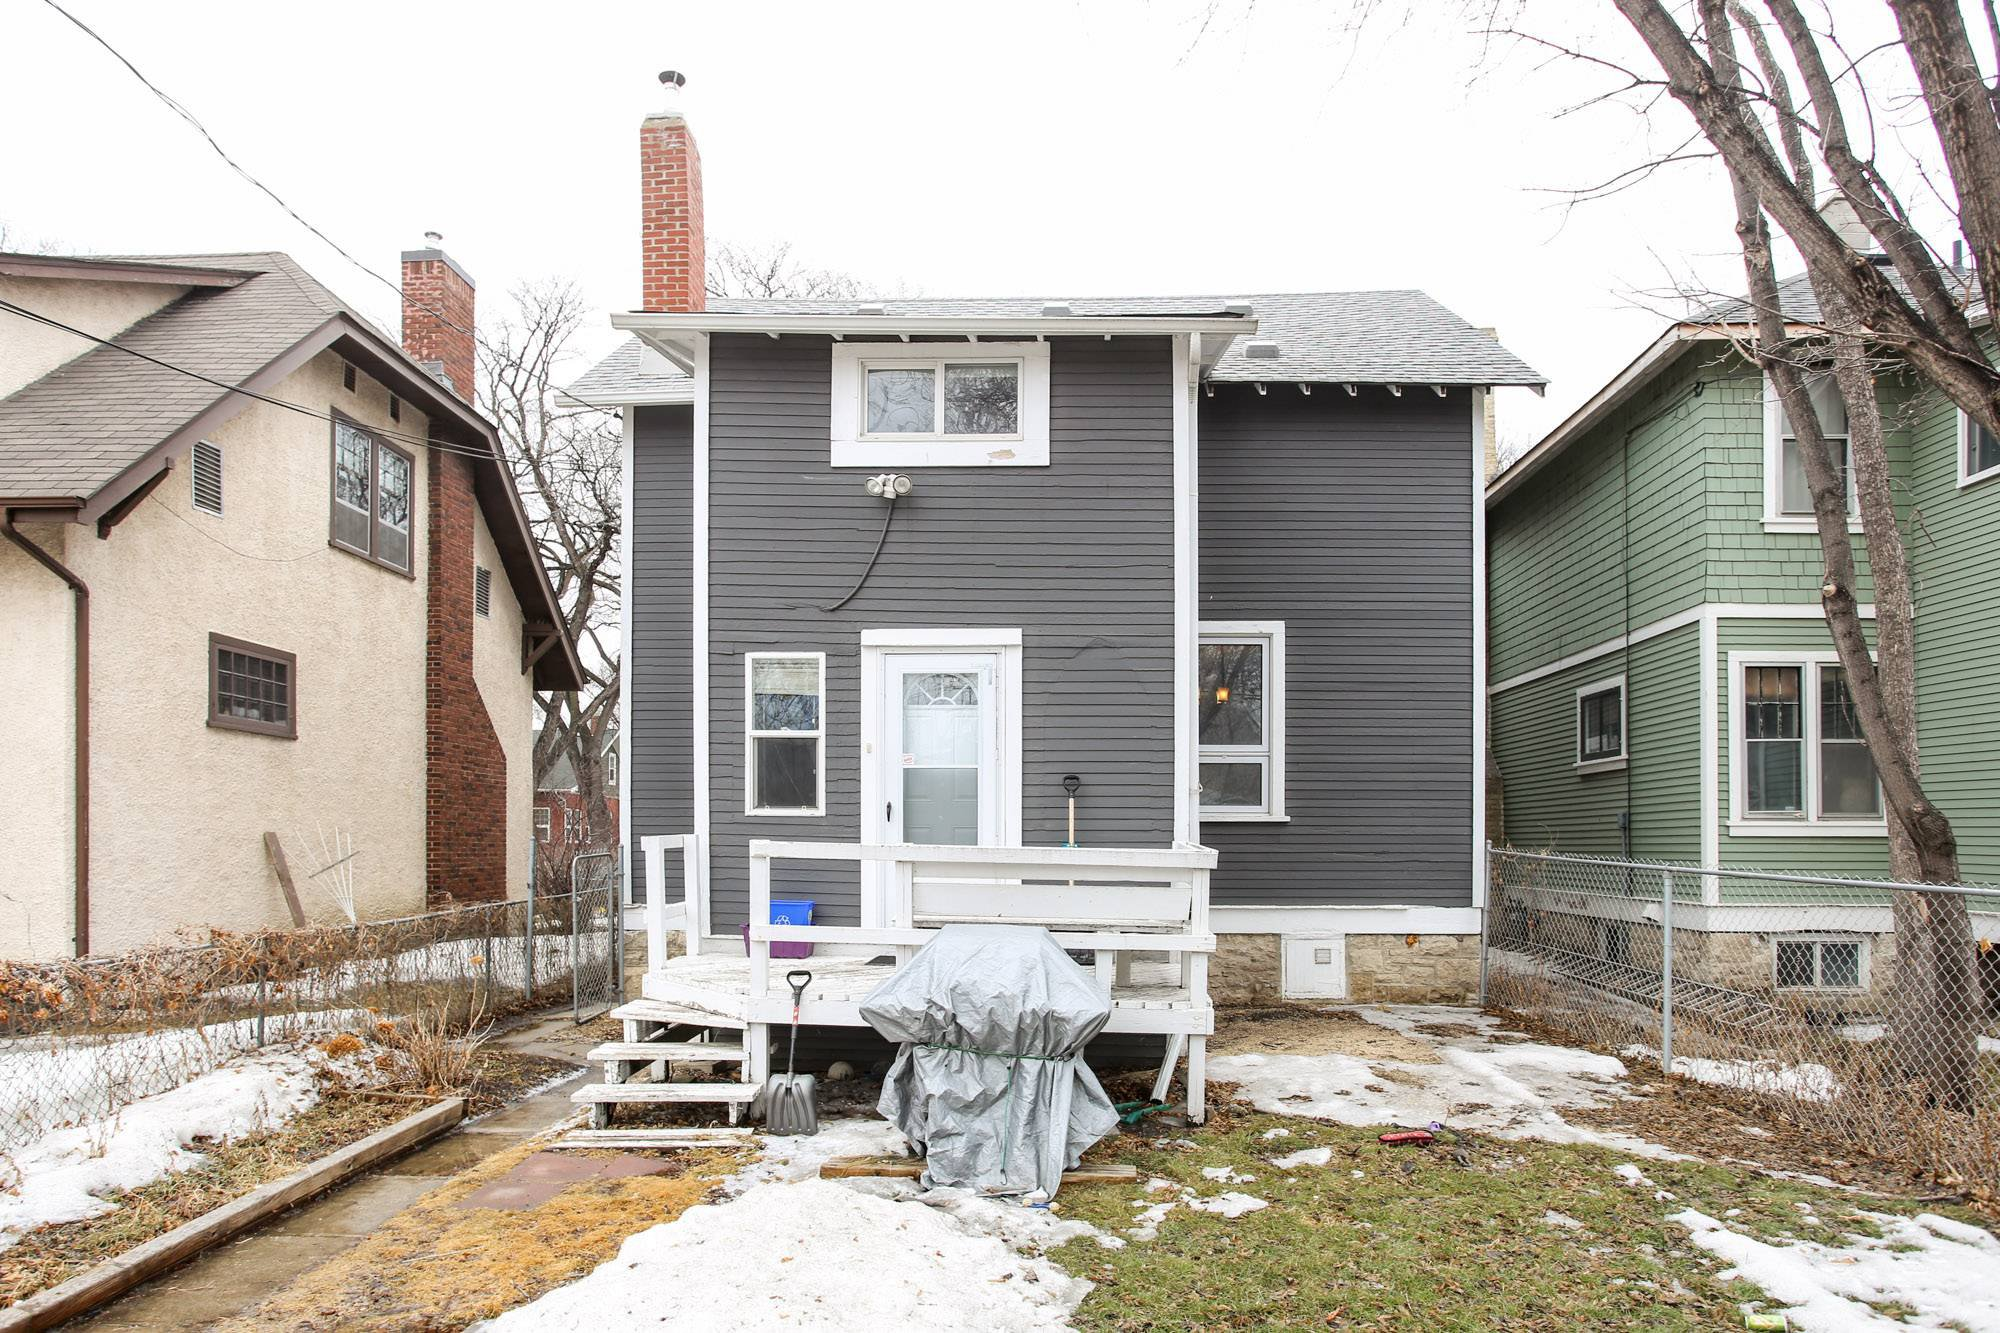 Photo 27: Photos: 528 Sprague Street in Winnipeg: Wolseley Single Family Detached for sale (5B)  : MLS®# 1907853